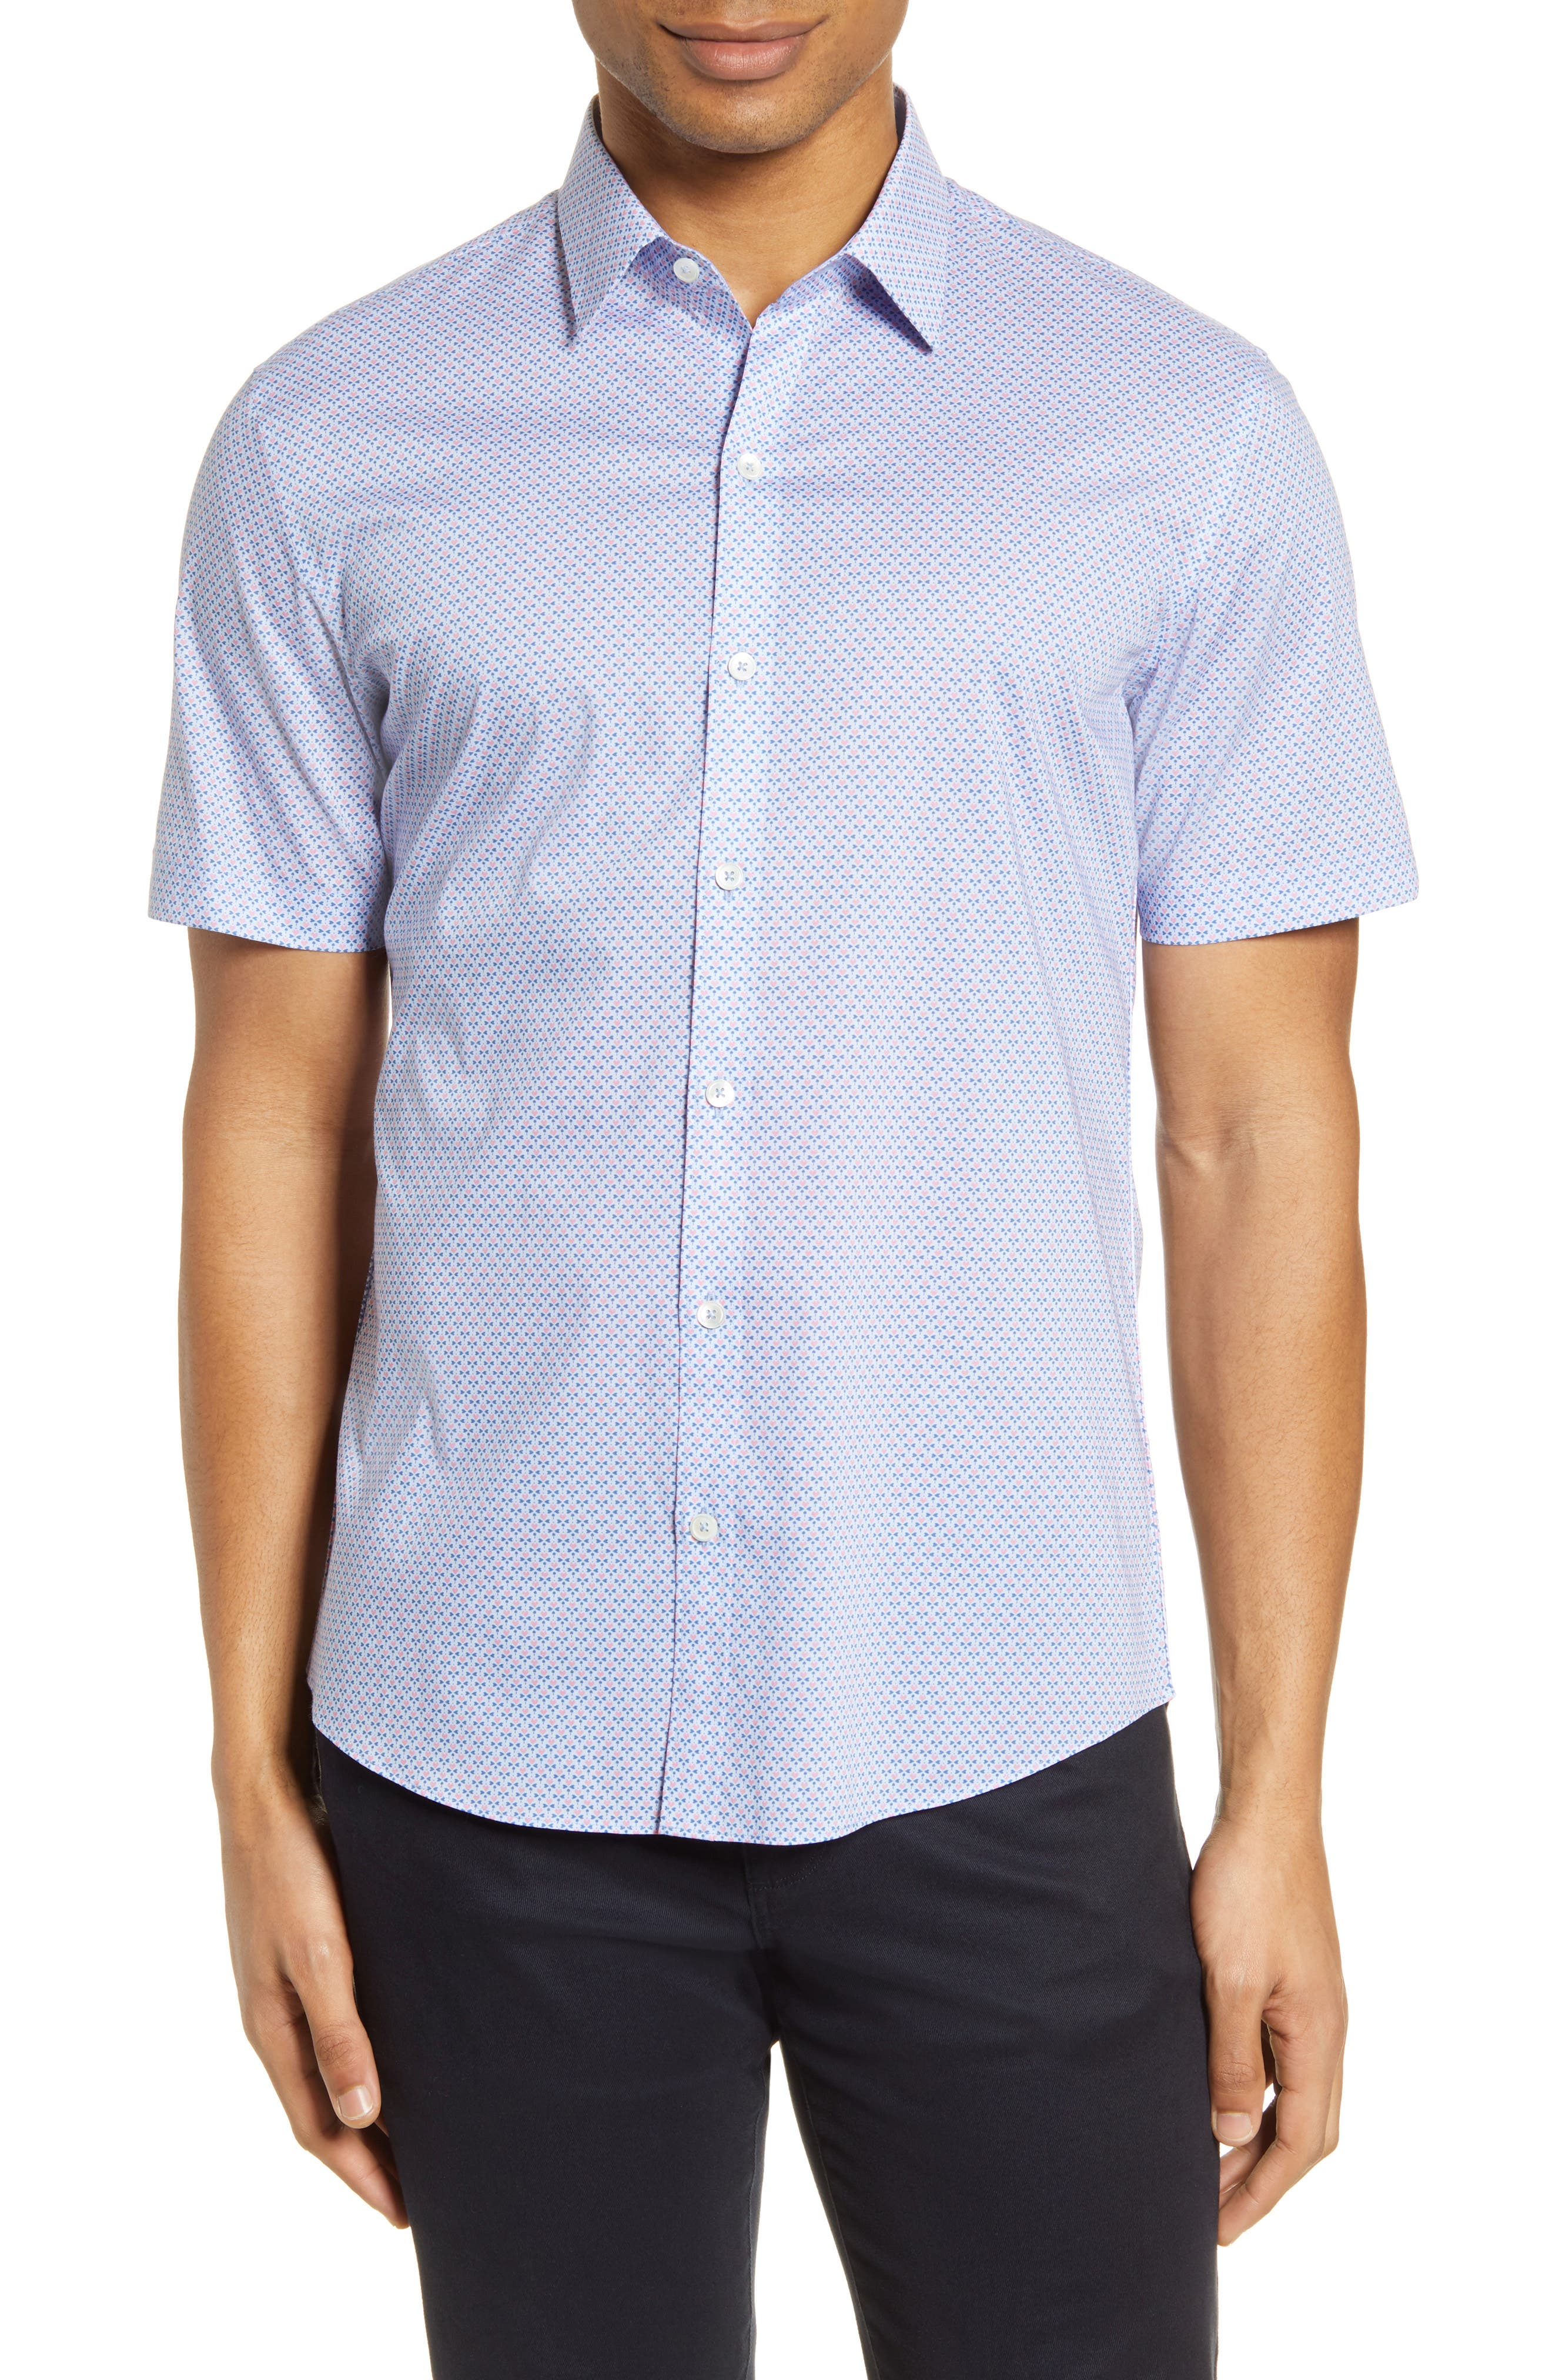 Zachary Prell Dinwiddie Classic Fit Short Sleeve Button Up Shirt Nordstrom Rack